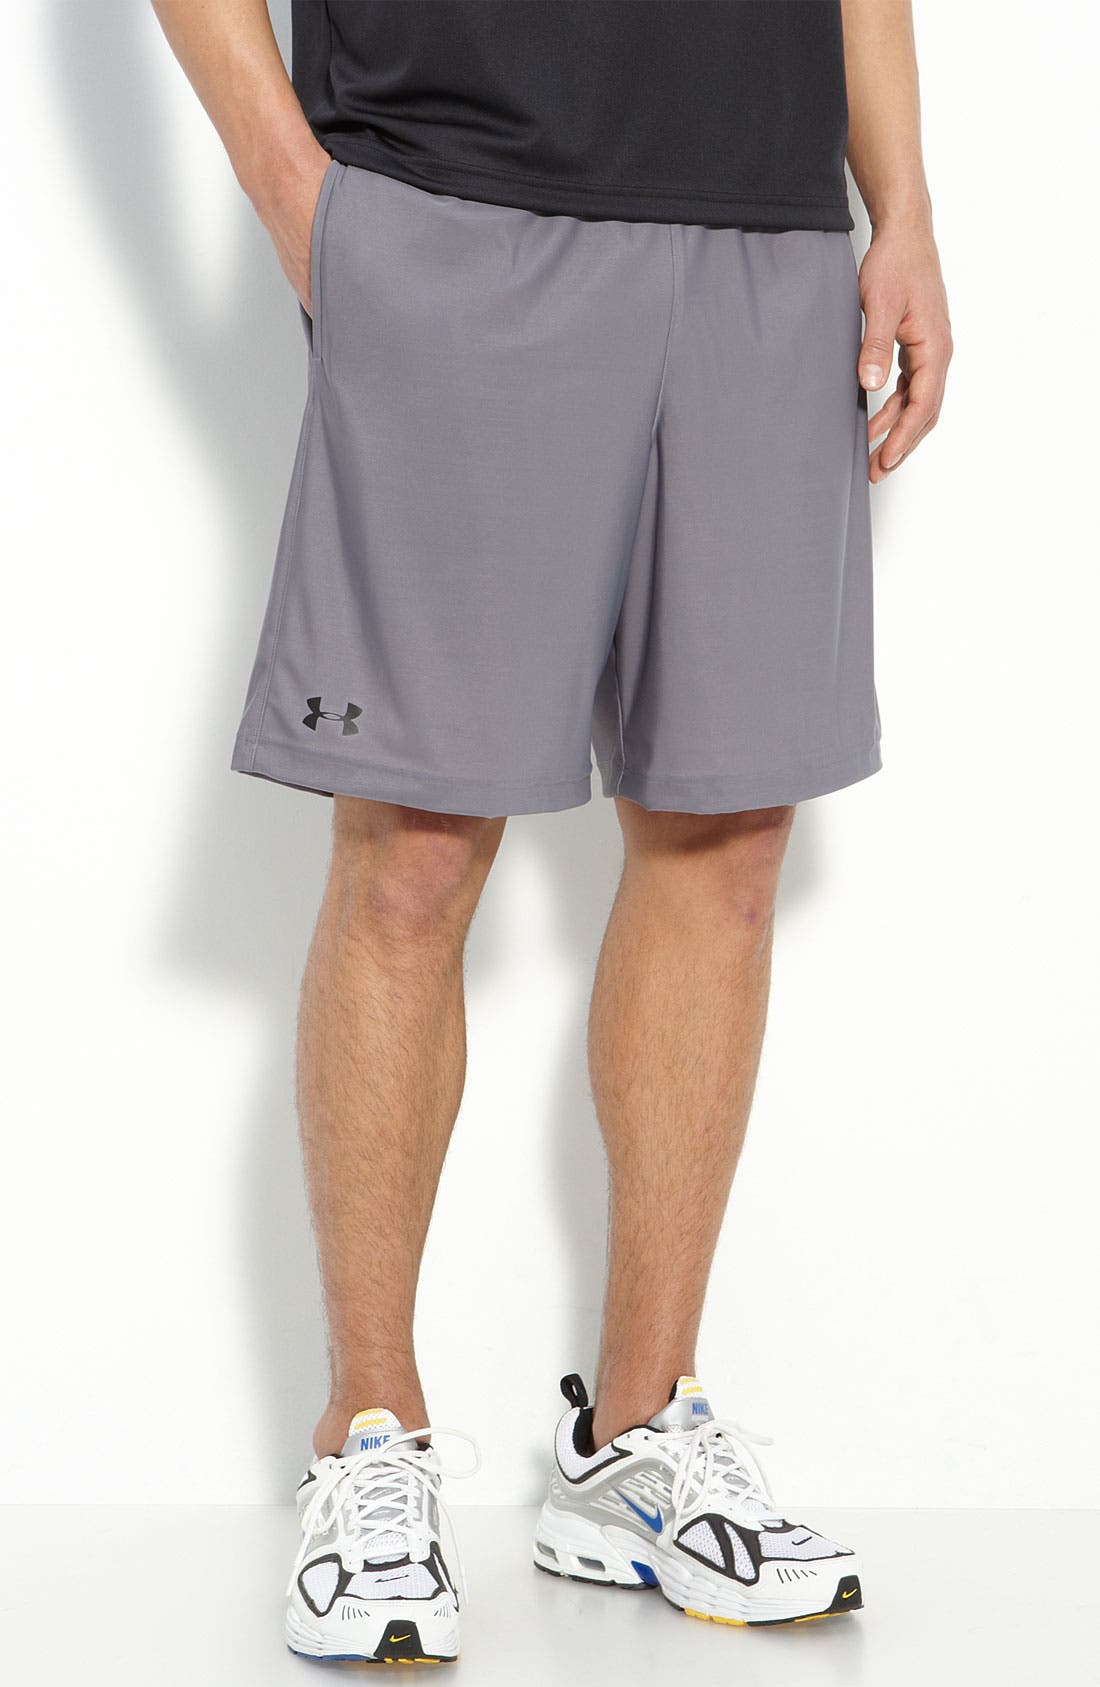 Alternate Image 1 Selected - Under Armour 'Micro' HeatGear® Knit Shorts